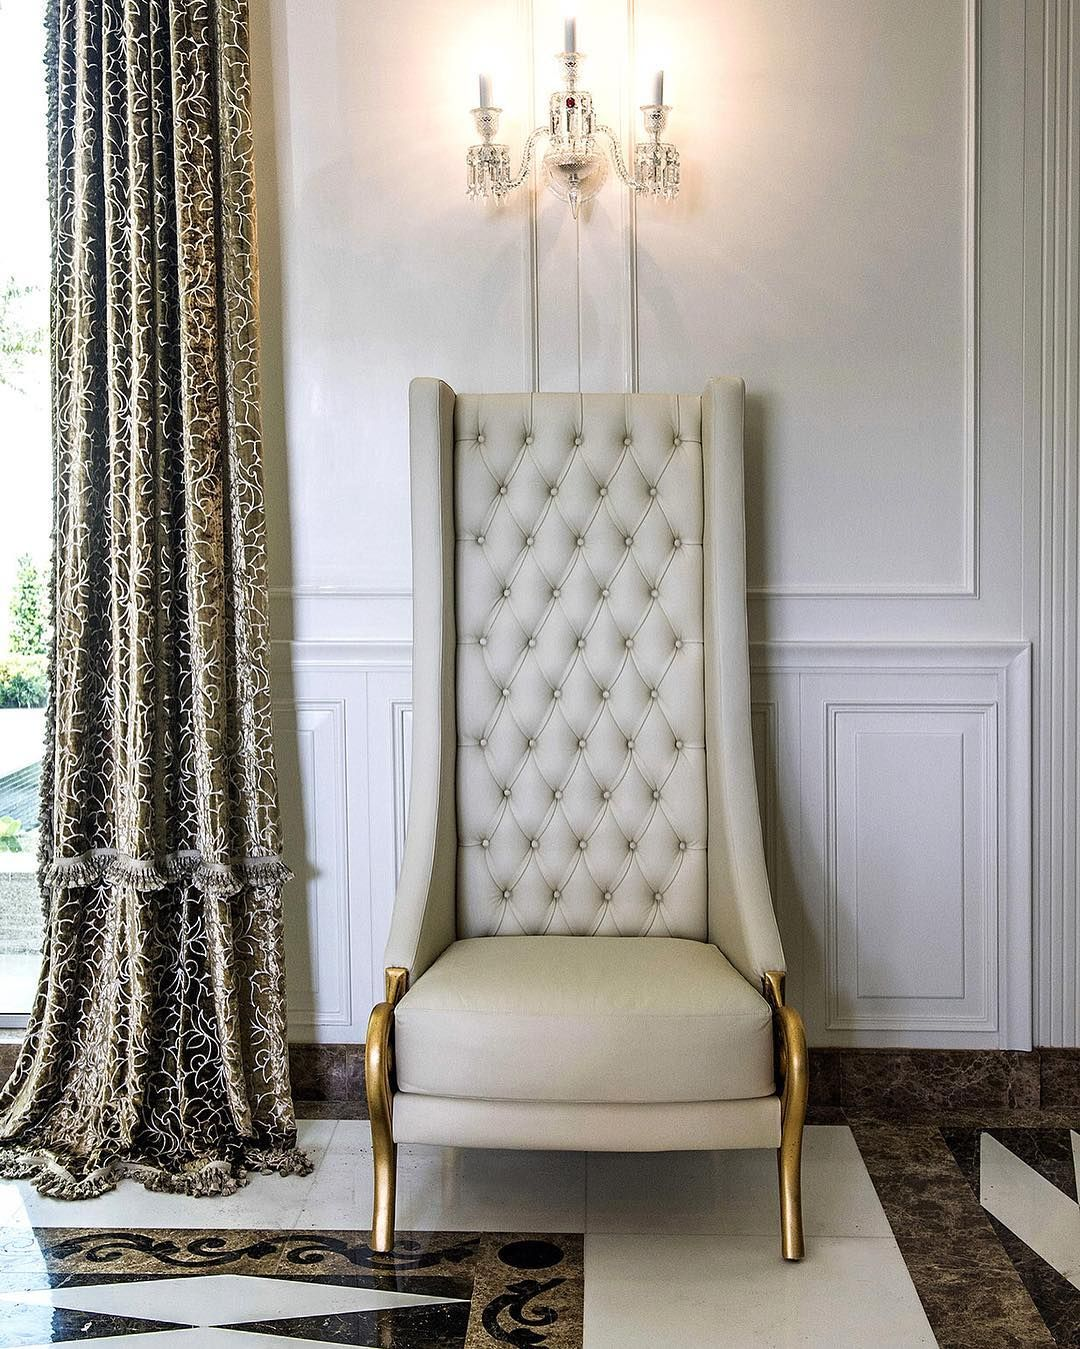 A Luxury High Back Chair Finished In A White Leather And Gold